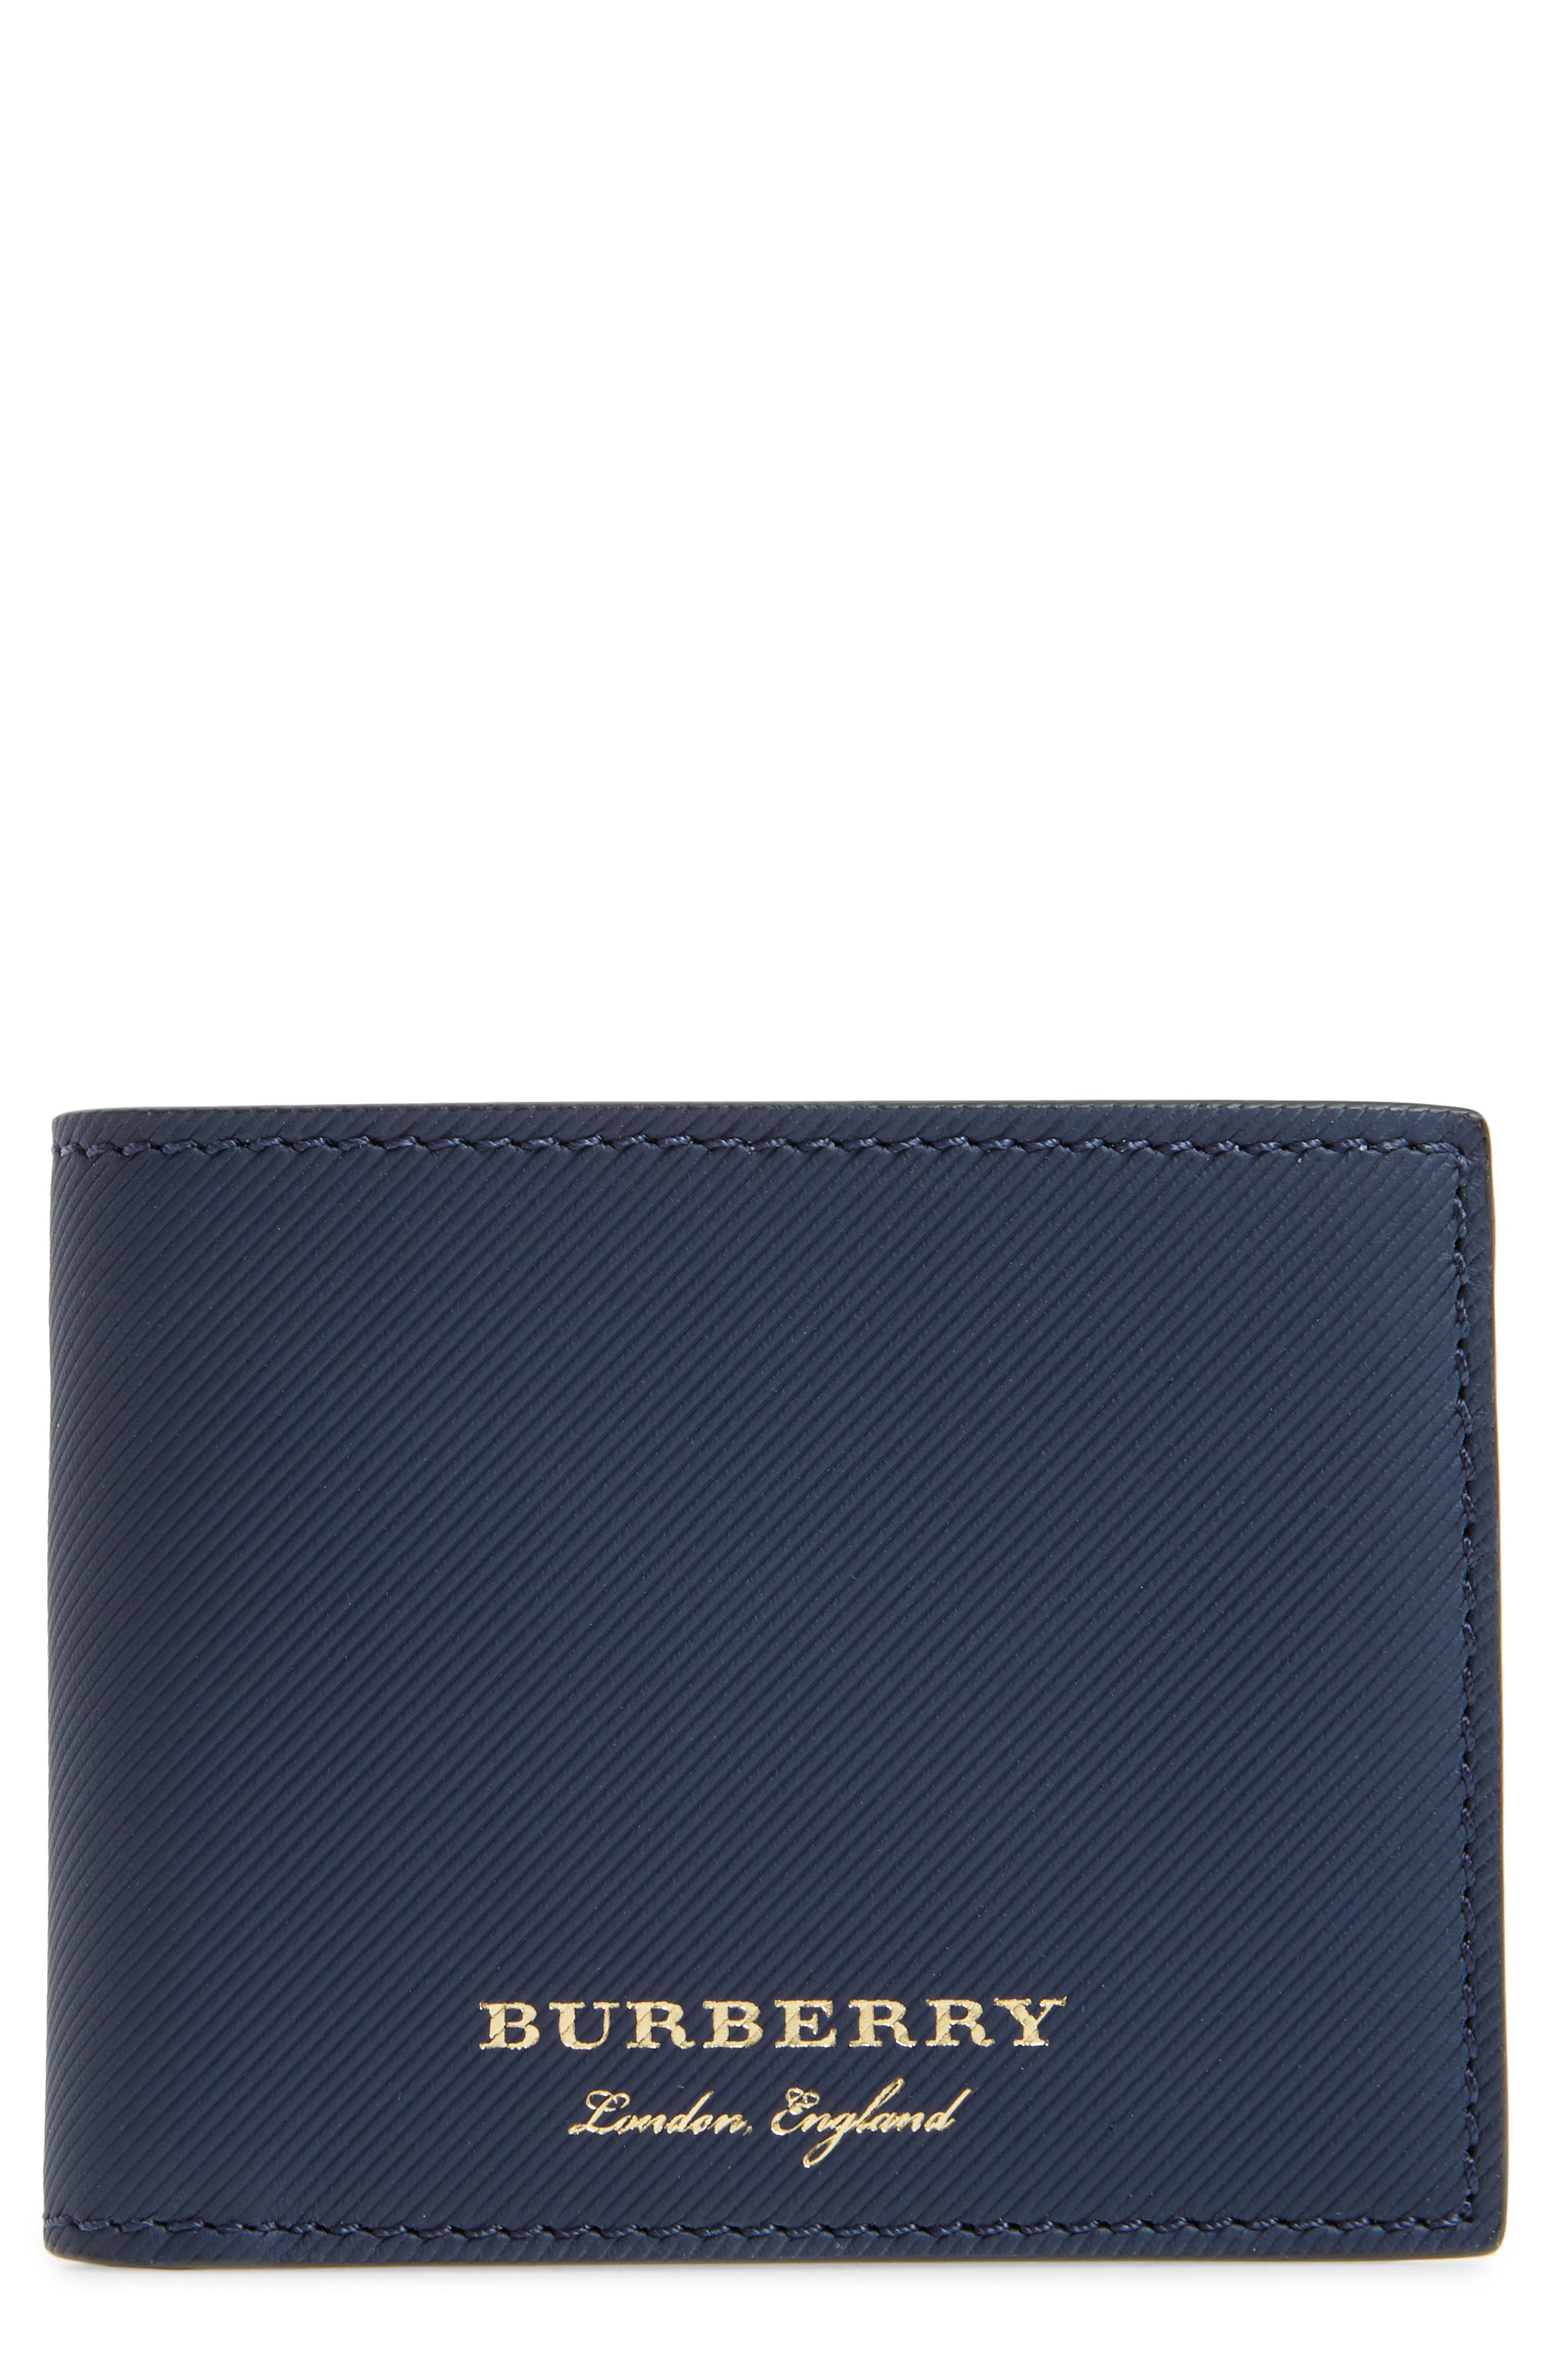 Main Image - Burberry Trench Leather Wallet